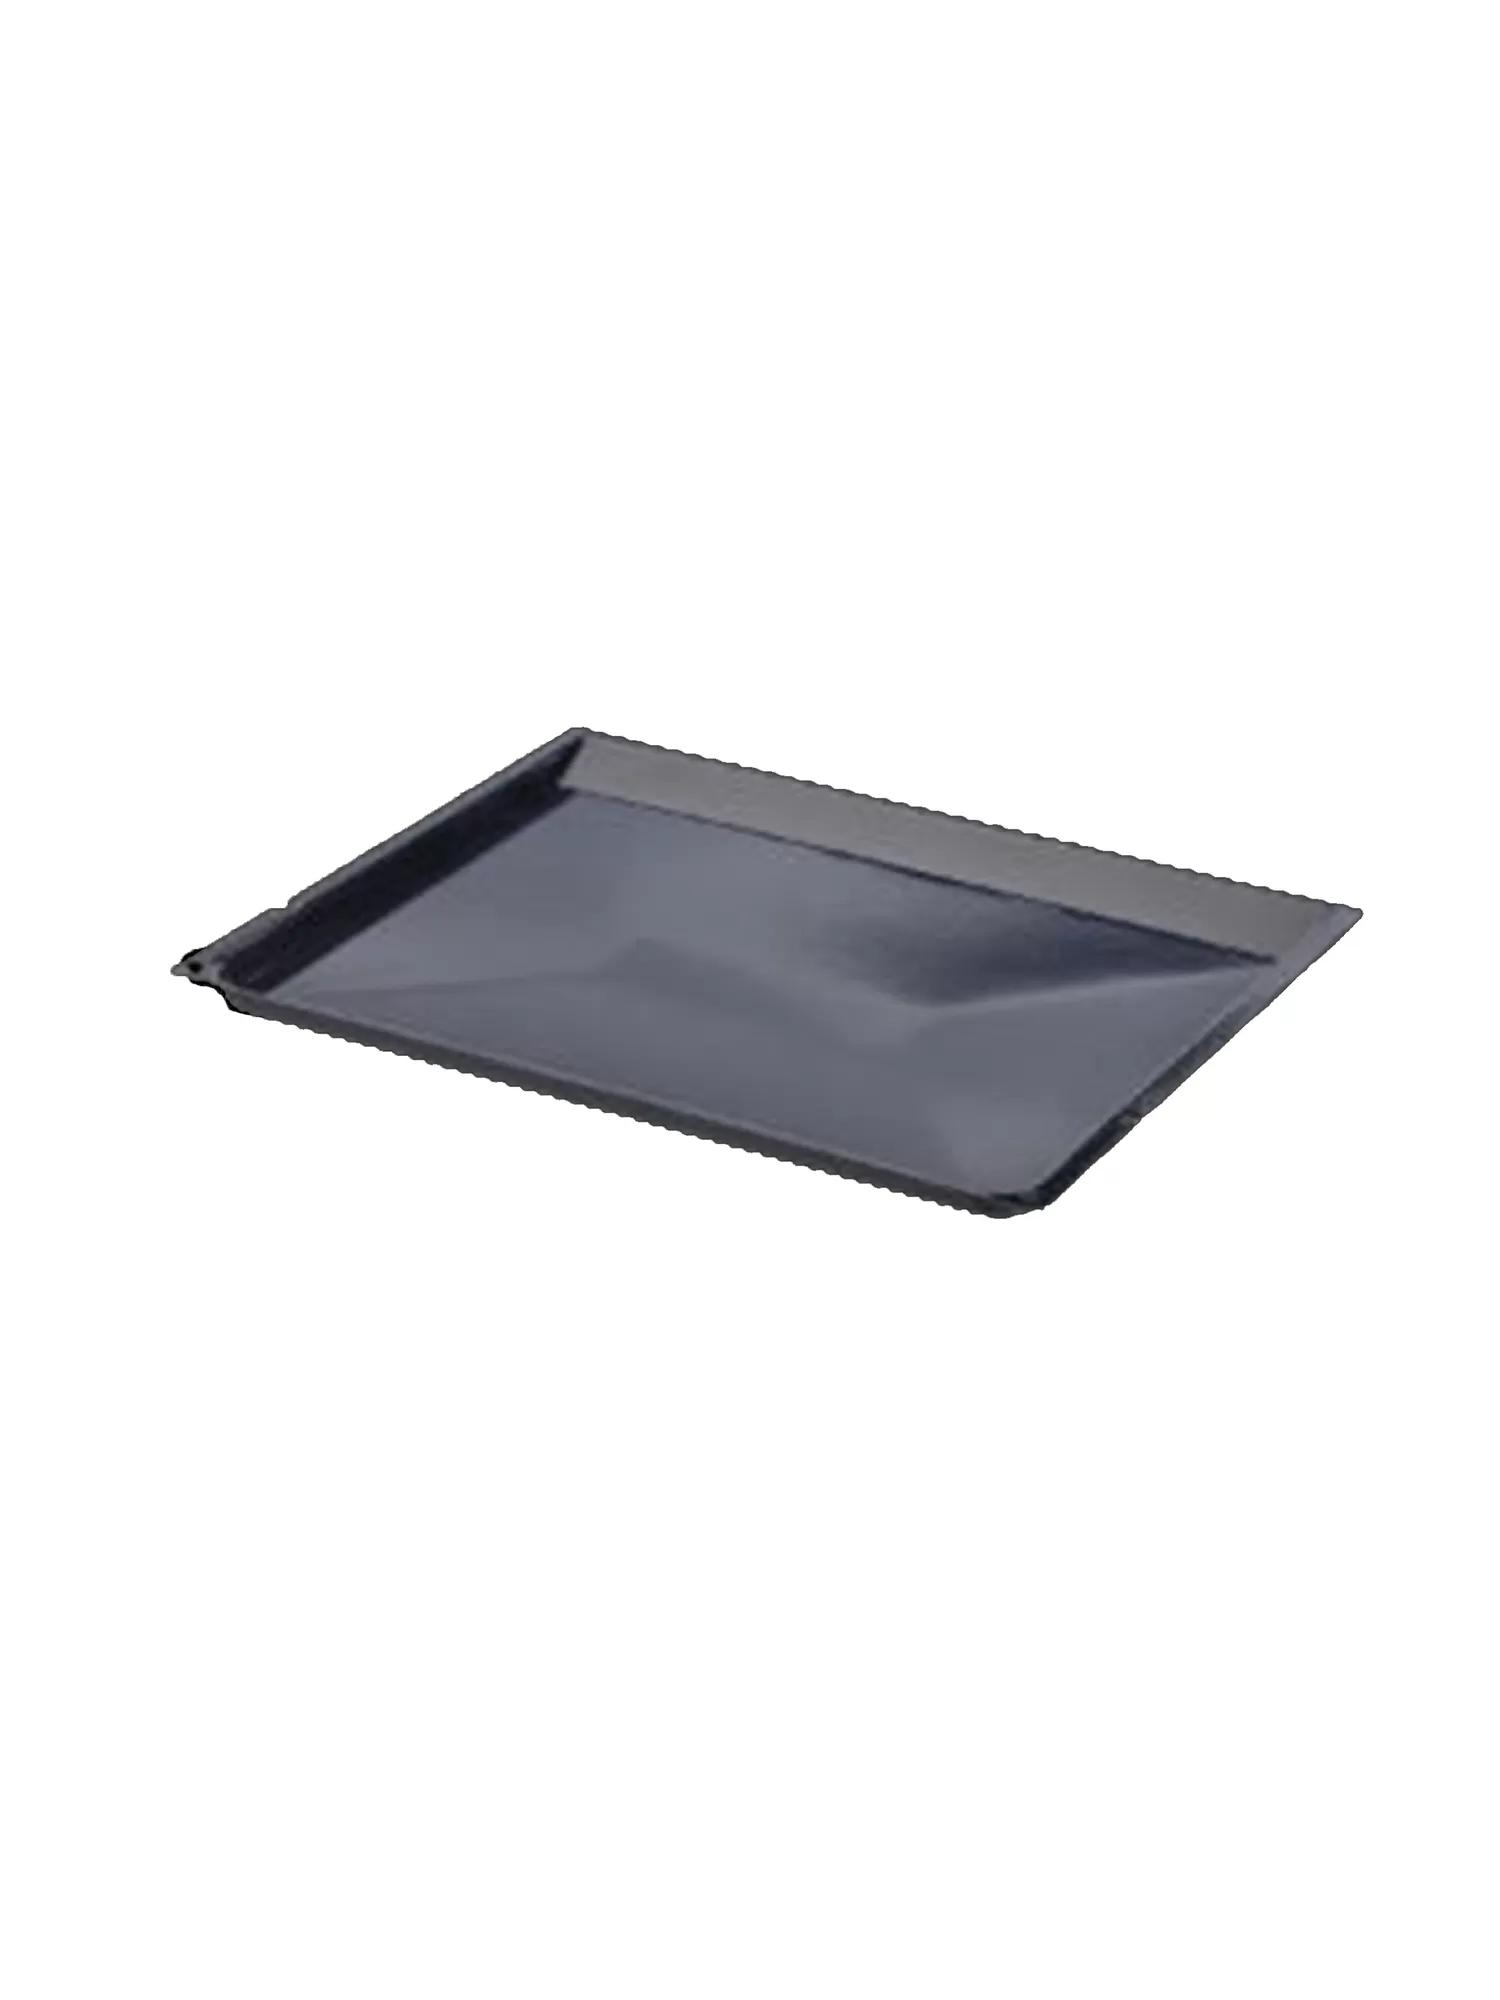 GaggenauBaking Tray Kb100042